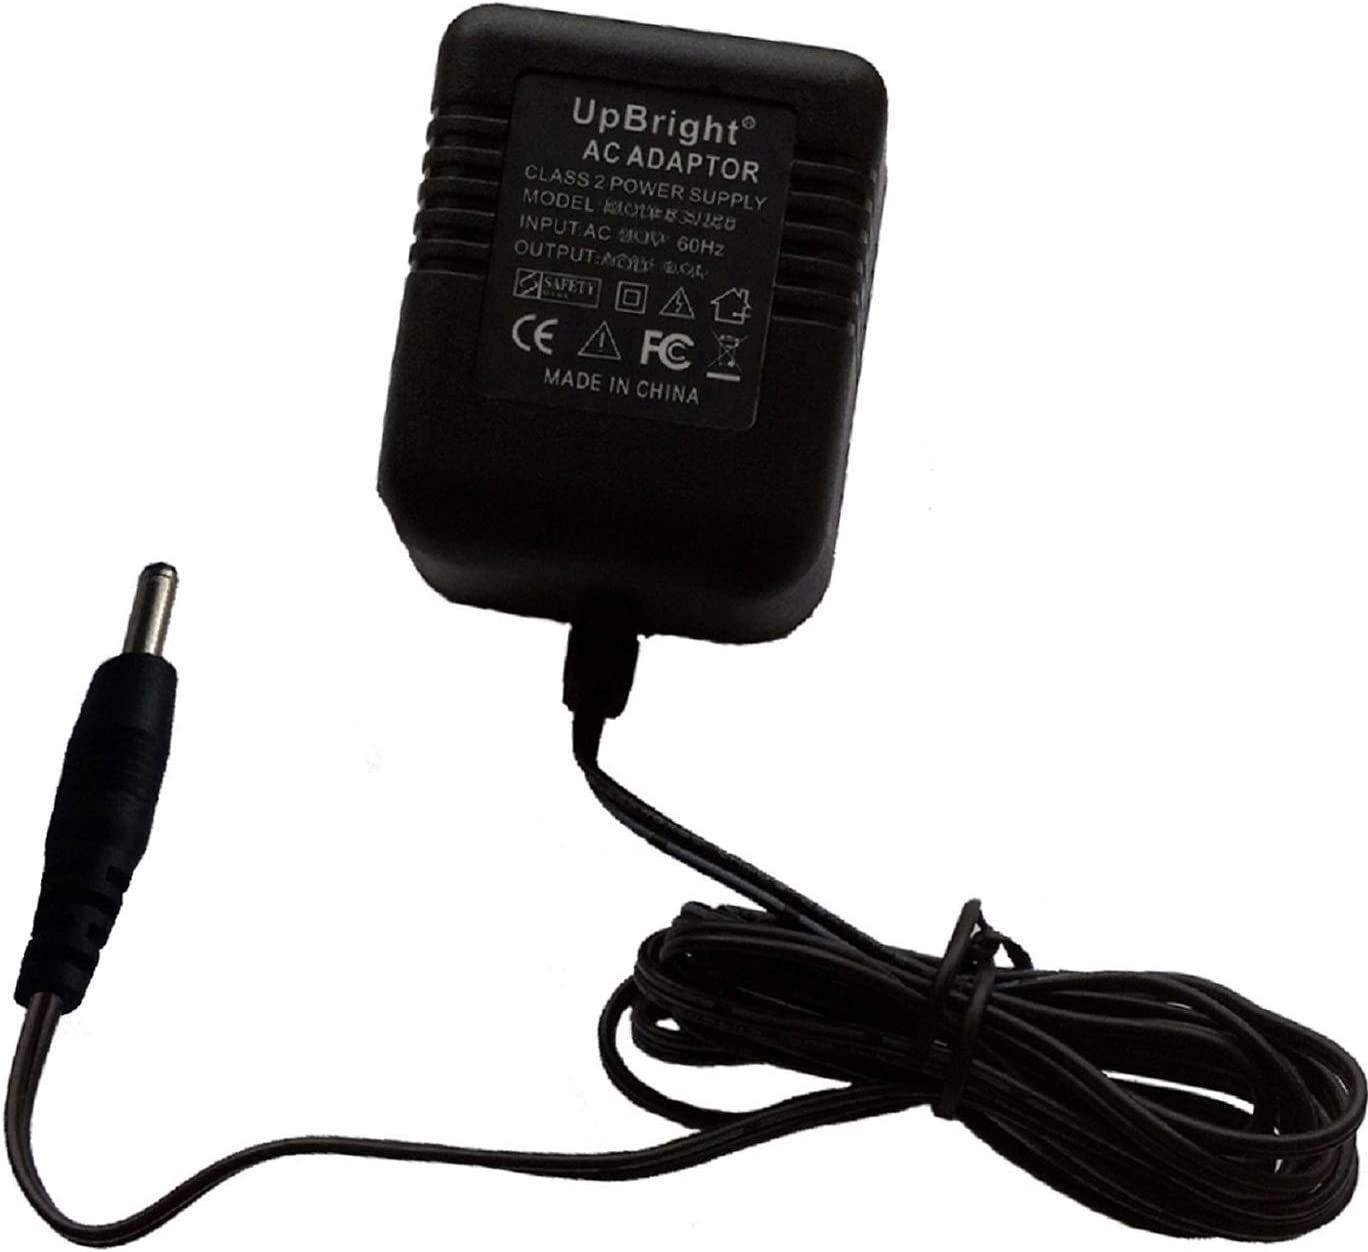 UpBright New 9V AC/AC Adapter Compatible with Motorola Duo Charger Cradle Talkabout T5720 Walkie-Talkie AC9V 9VAC Power Supply Cord Cable PS Wall Home Battery Charger Mains PSU